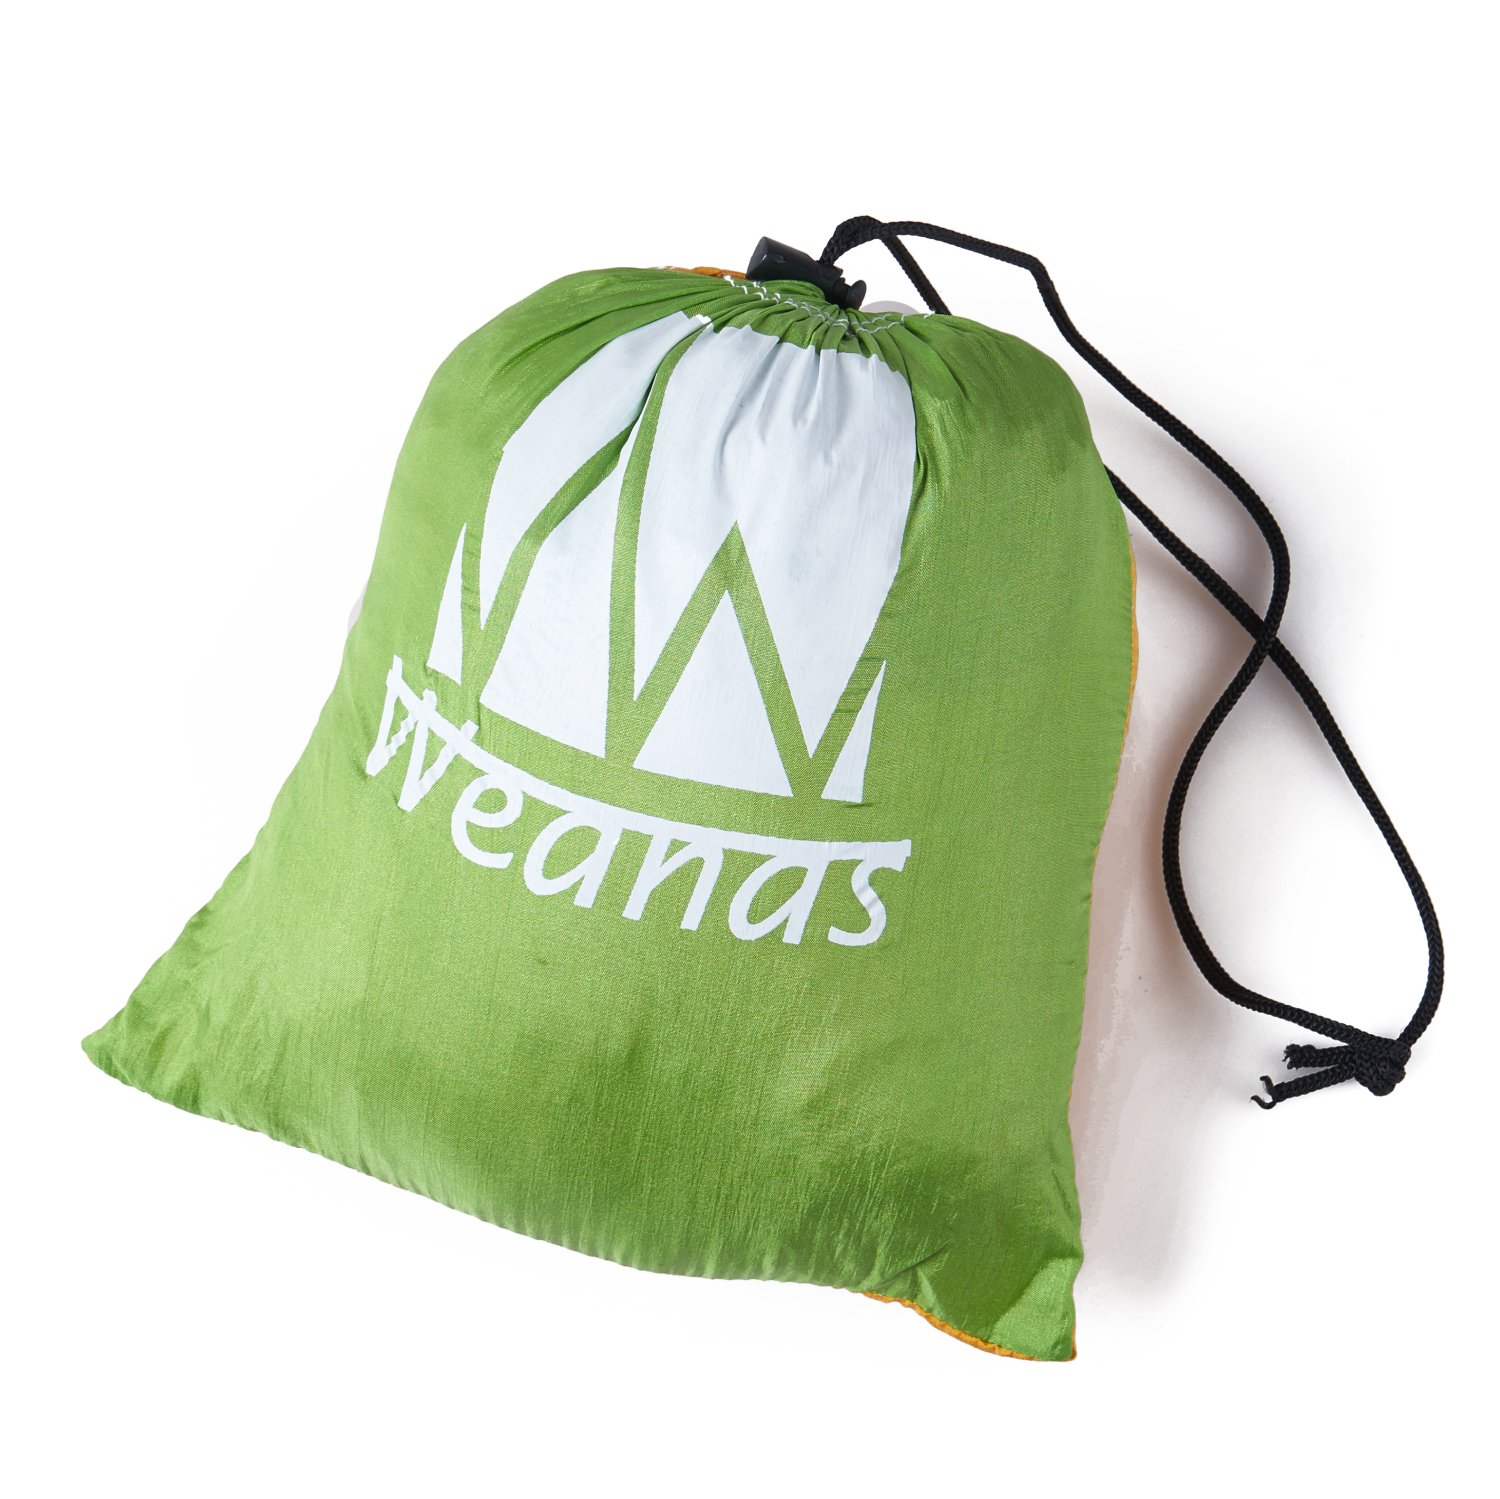 Weanas Extra Large Double Hammock Ultralight Extra Double - Purple/&Green Lightweight Portable Parachute Nylon Double Deluxe Outdoor Indoor Camping Hammock